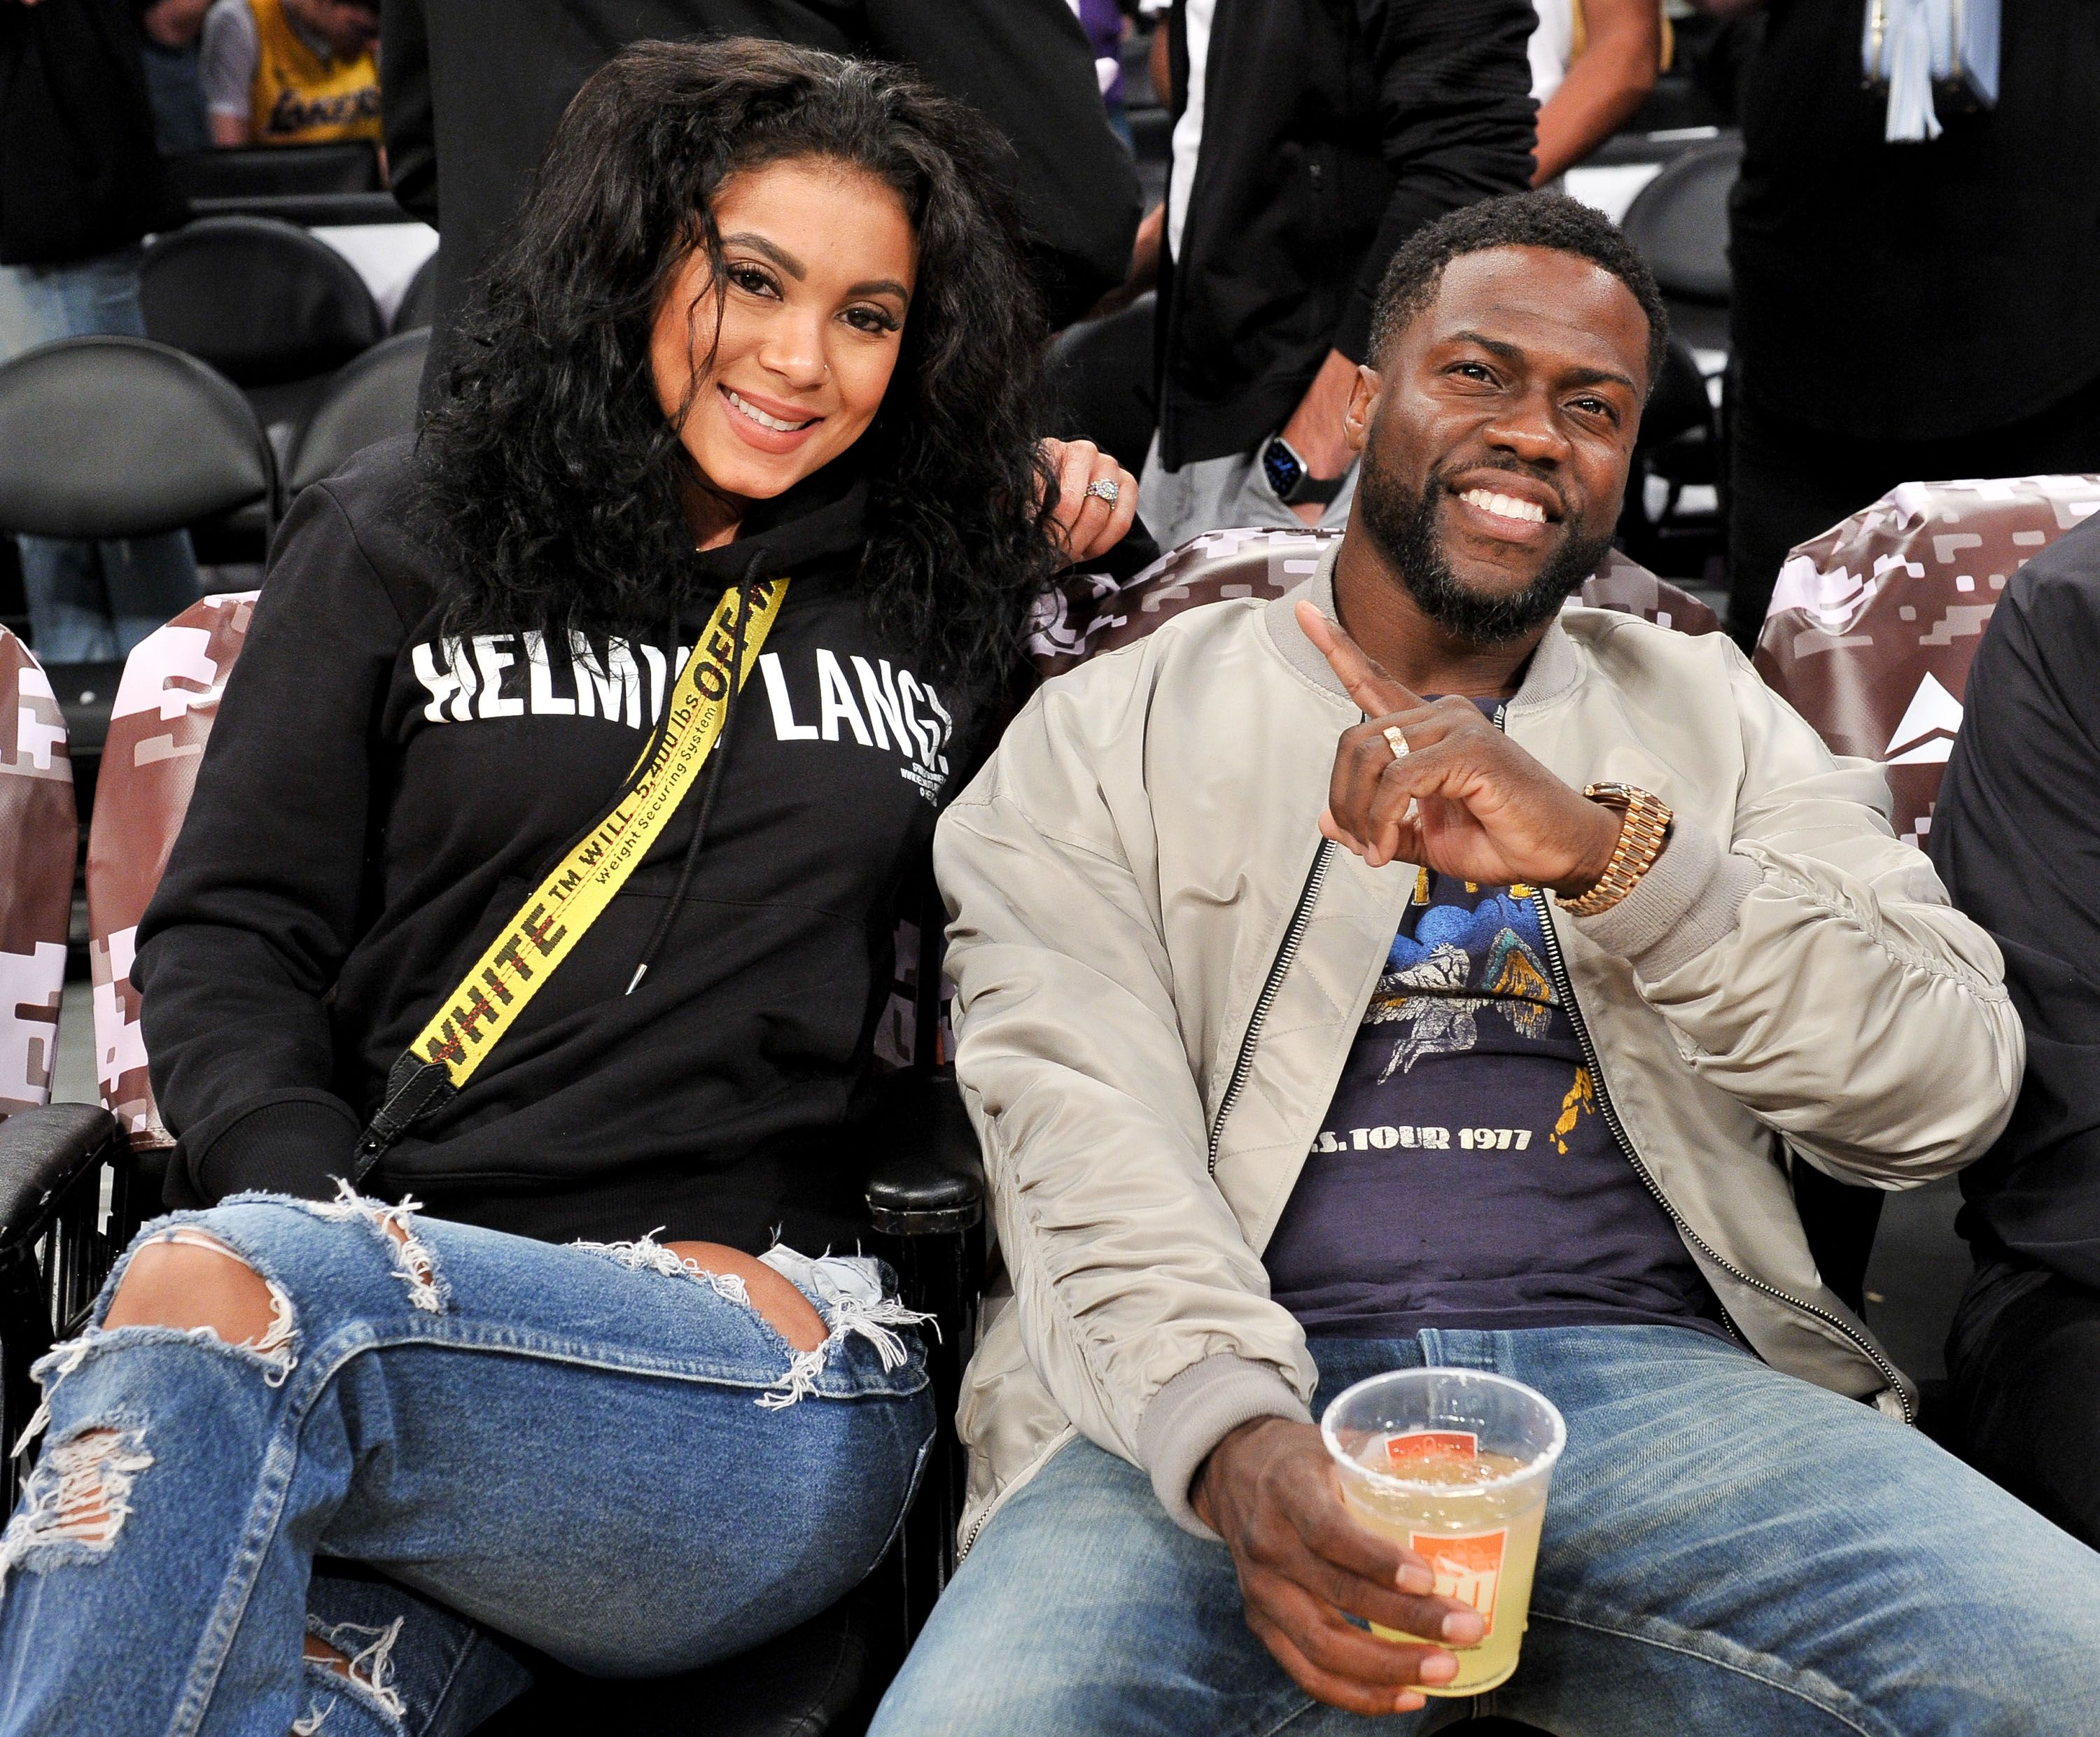 Kevin Hart and Eniko Parrish at a Los Angeles Lakers and the Atlanta Hawks basketball game on November 17, 2019, in Los Angeles, California | Photo: Allen Berezovsky/Getty Images